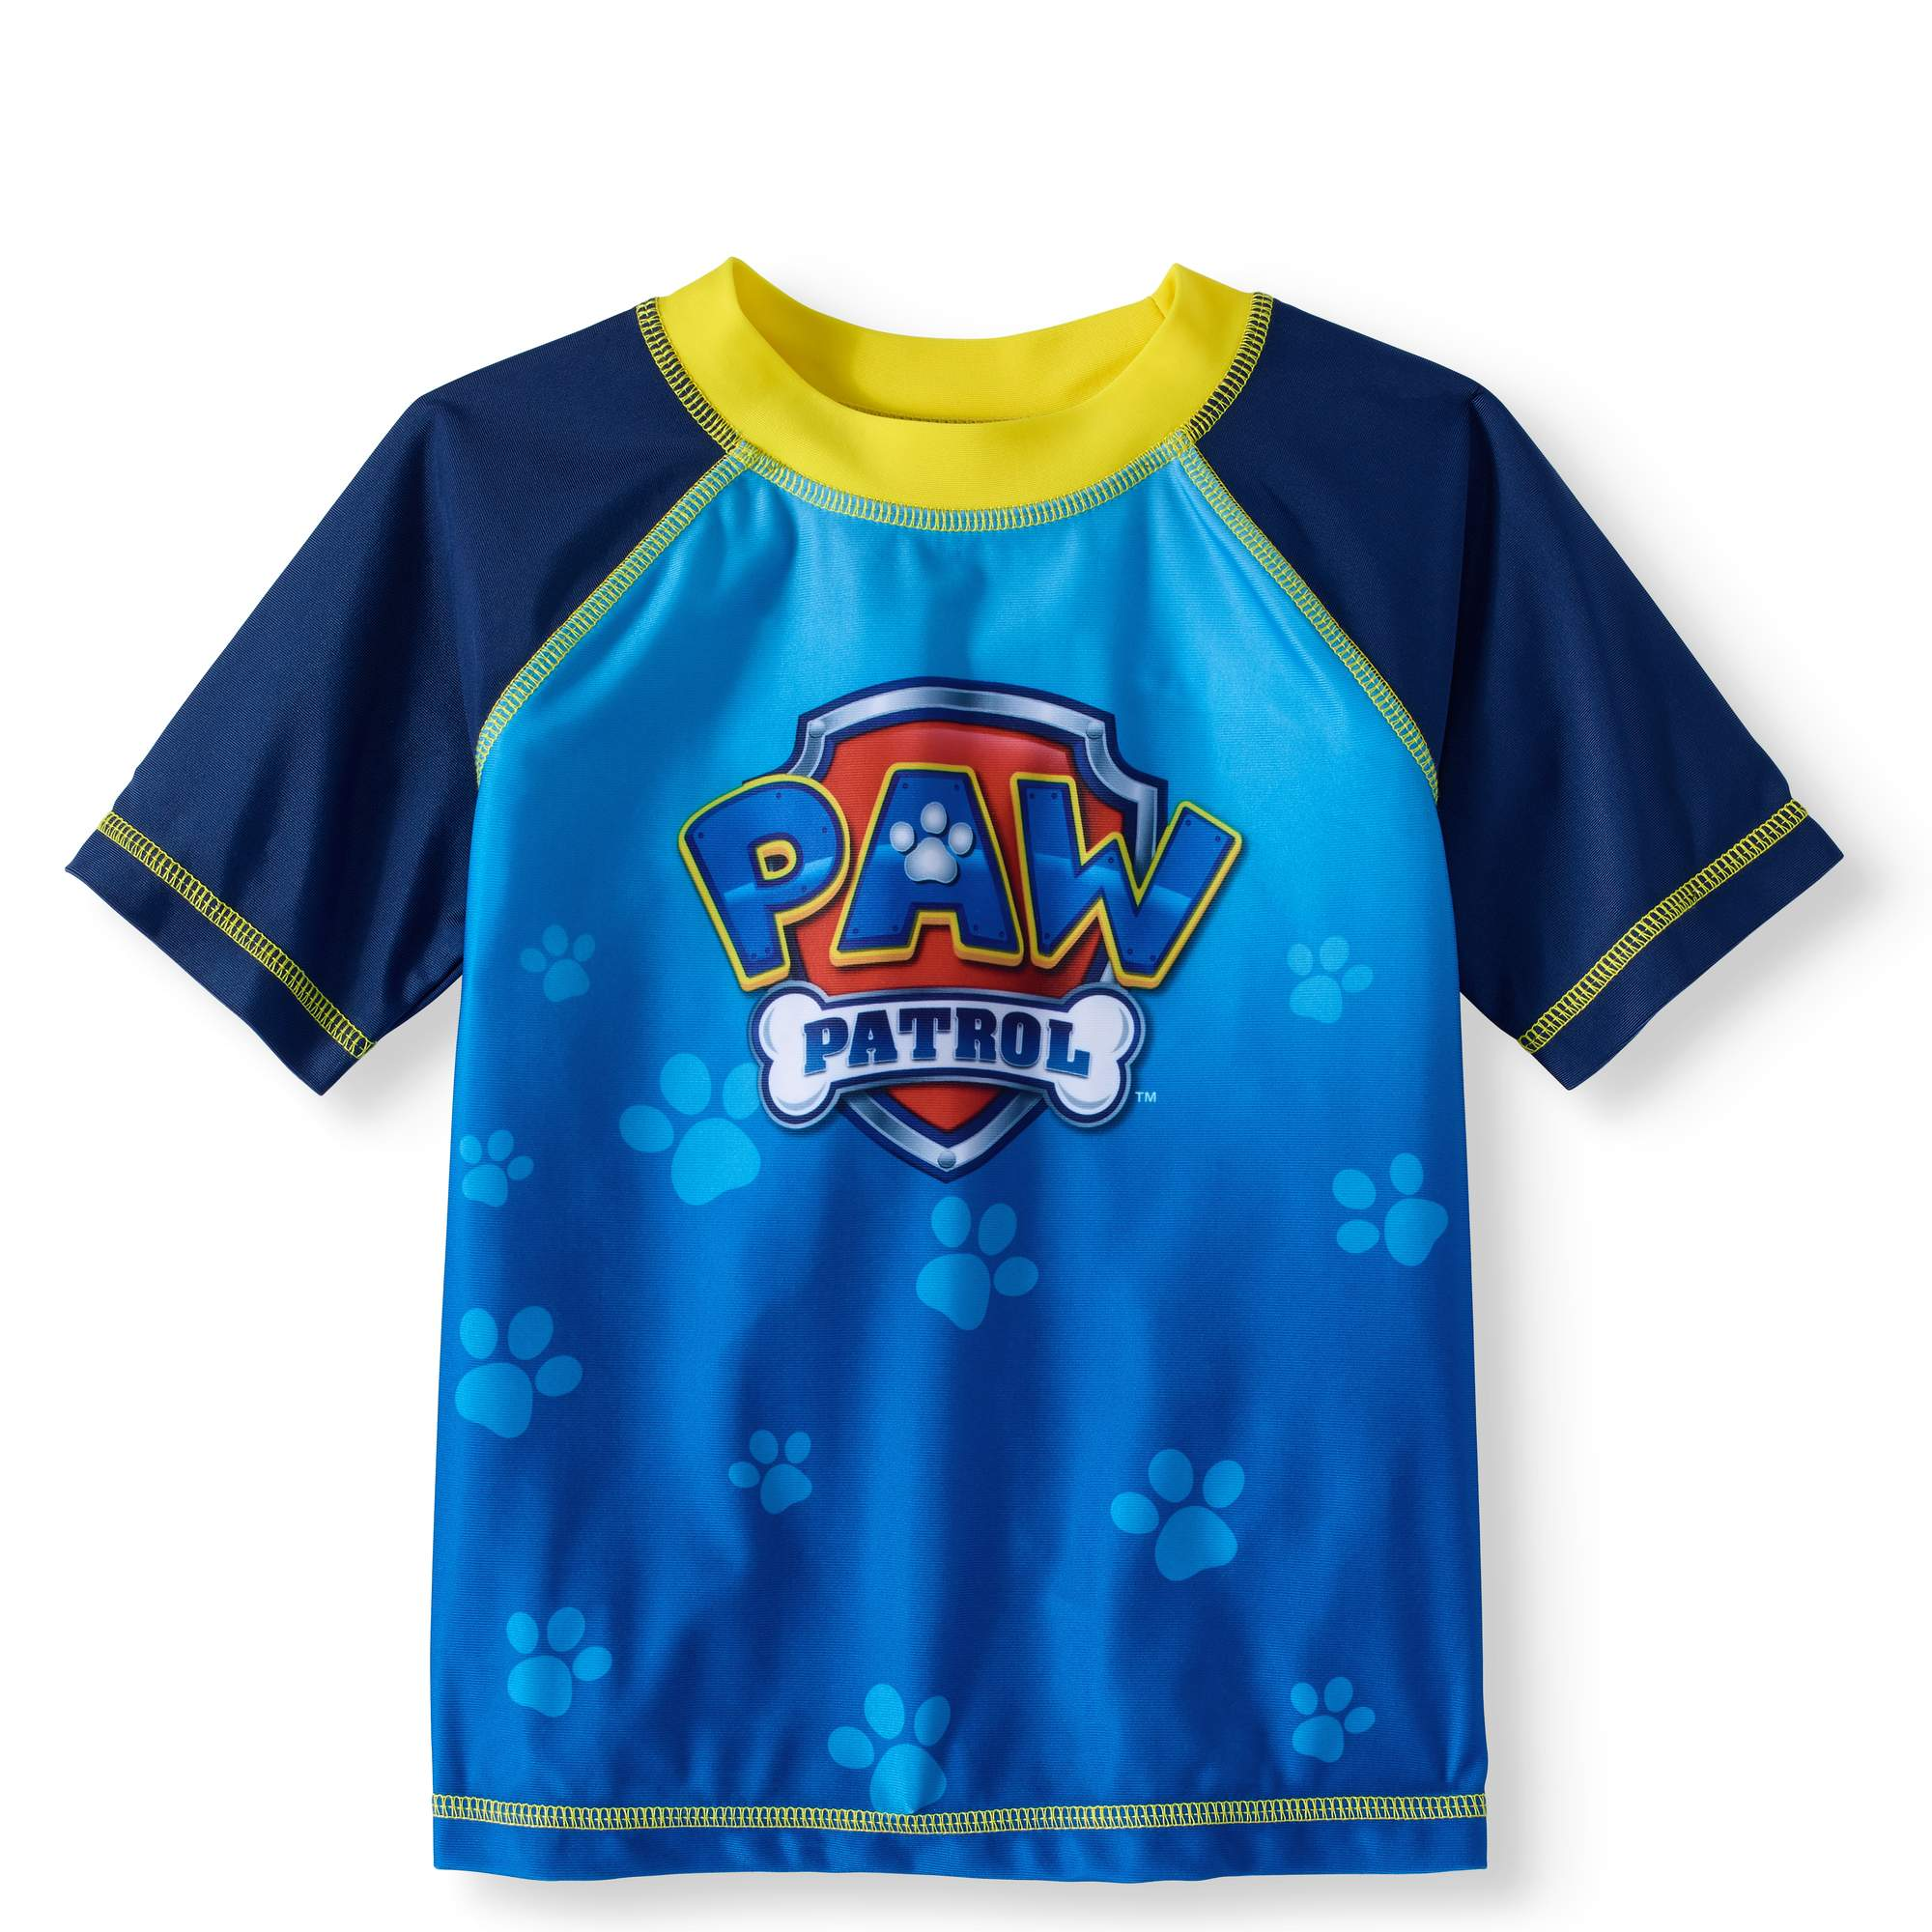 Toddler Boys' Rashguard Swim Top